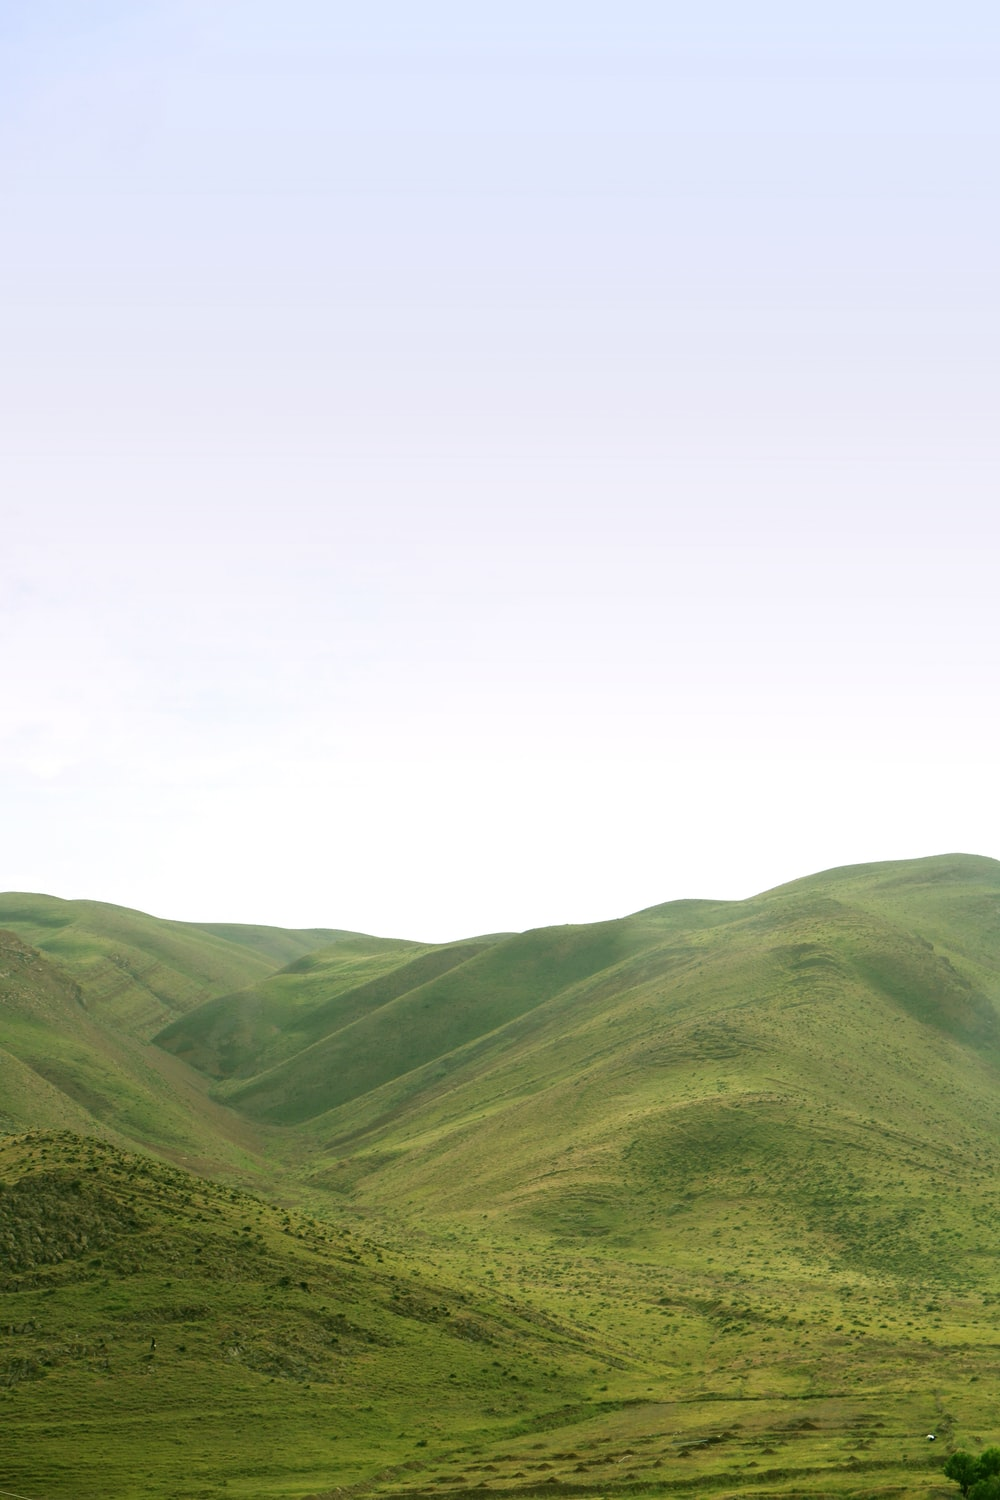 green mountains under white sky during daytime